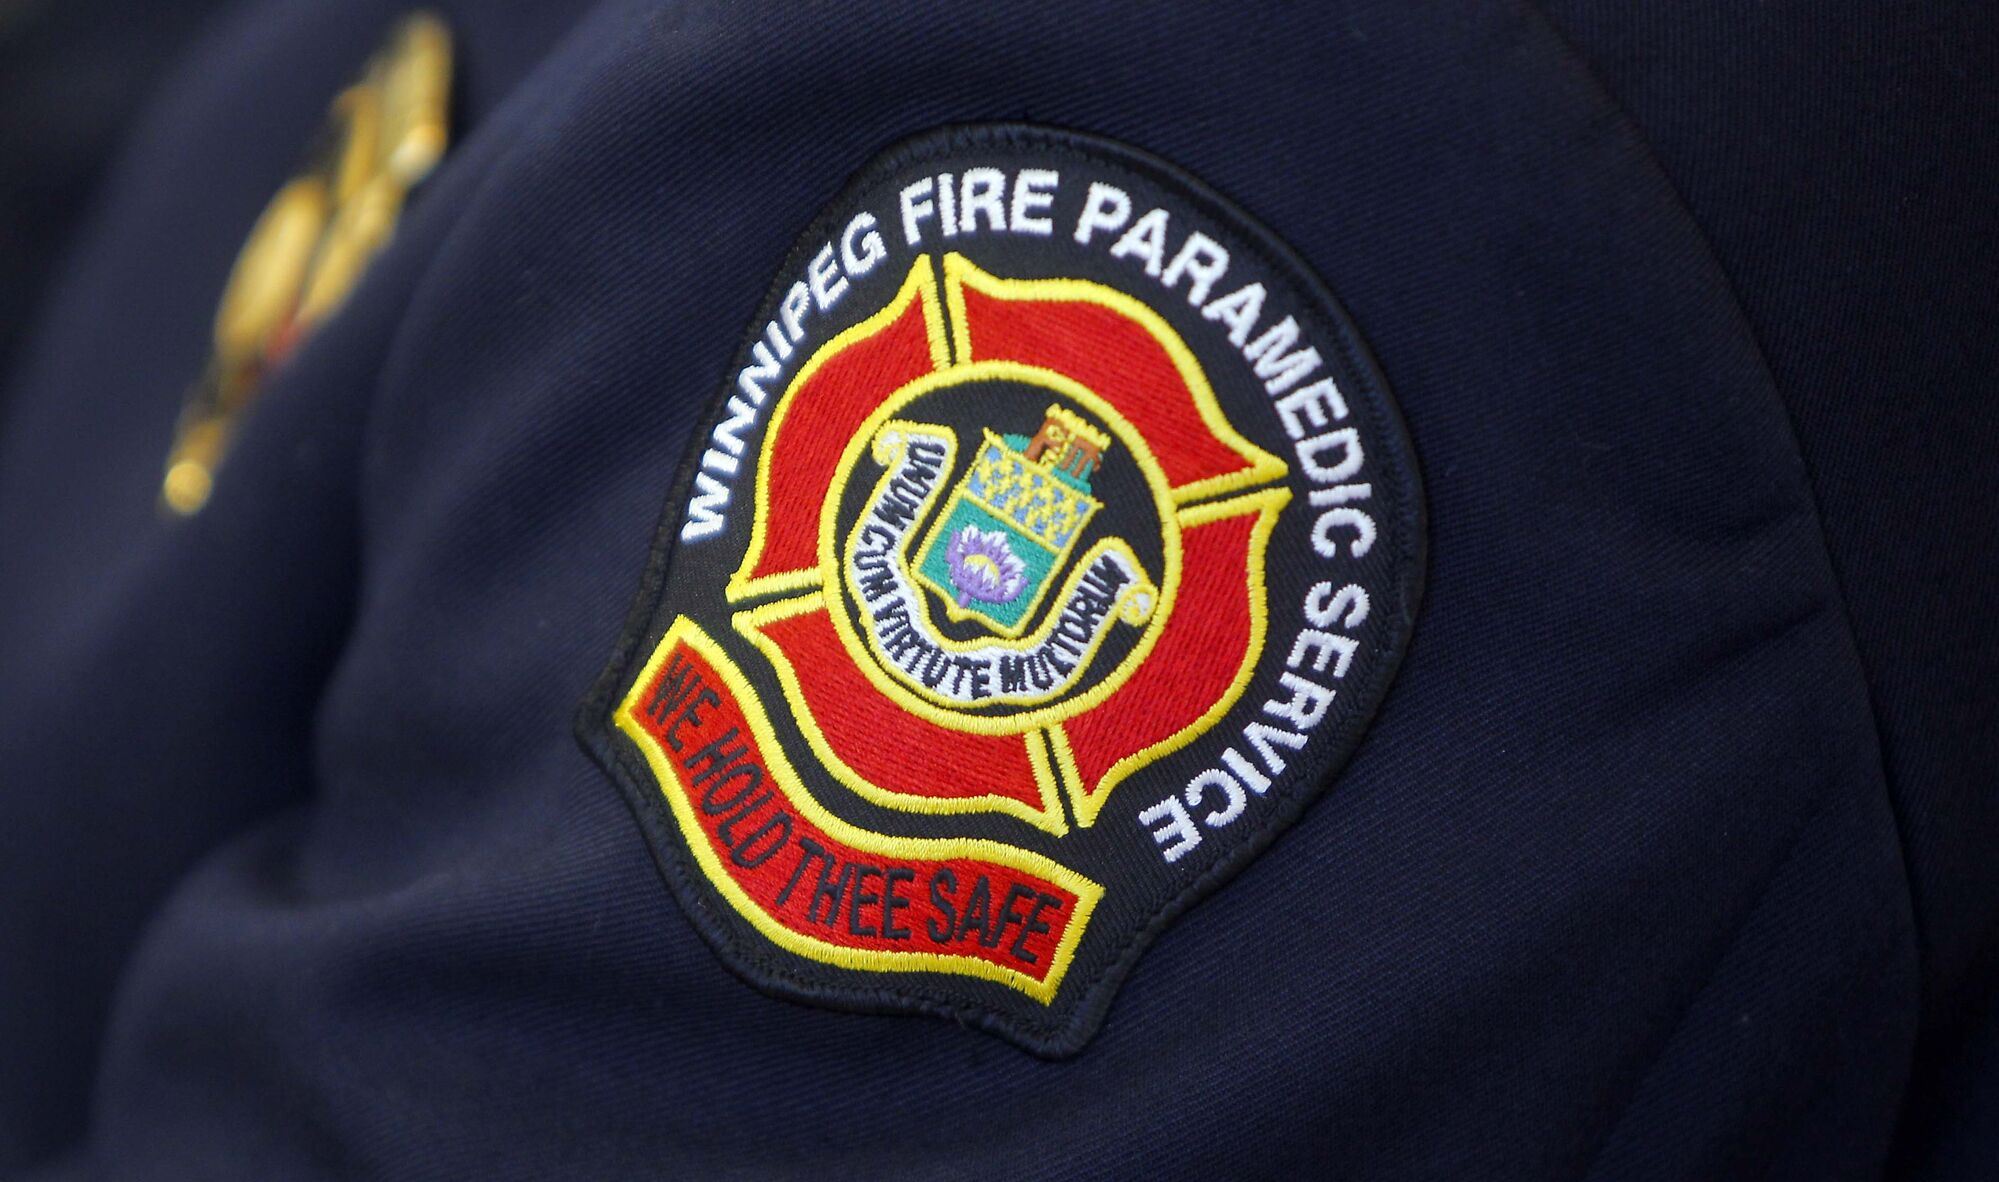 BORIS MINKEVICH / WINNIPEG FREE PRESS The Winnipeg Fire Paramedic Service is releasing few details about the captain who was hurt while on the job Sunday morning.